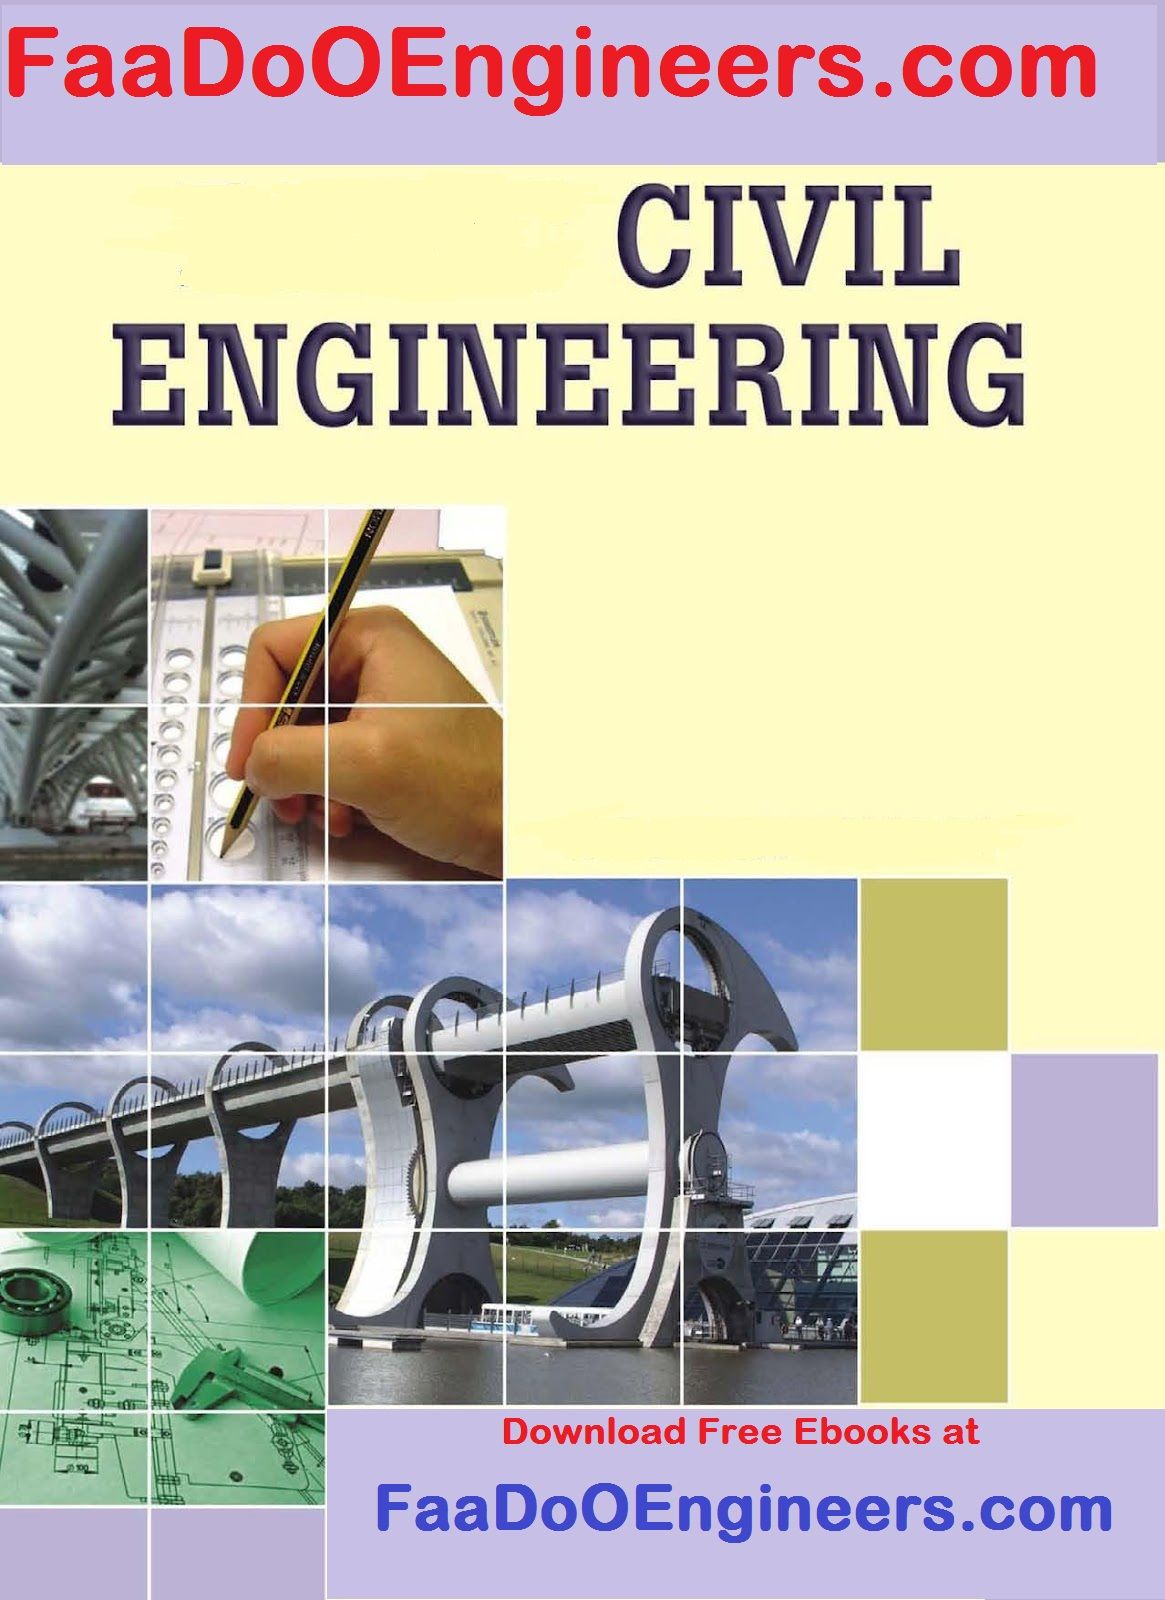 Free download civil engineering ebooks notes faadooengineers free download civil engineering ebooks notes fandeluxe Images